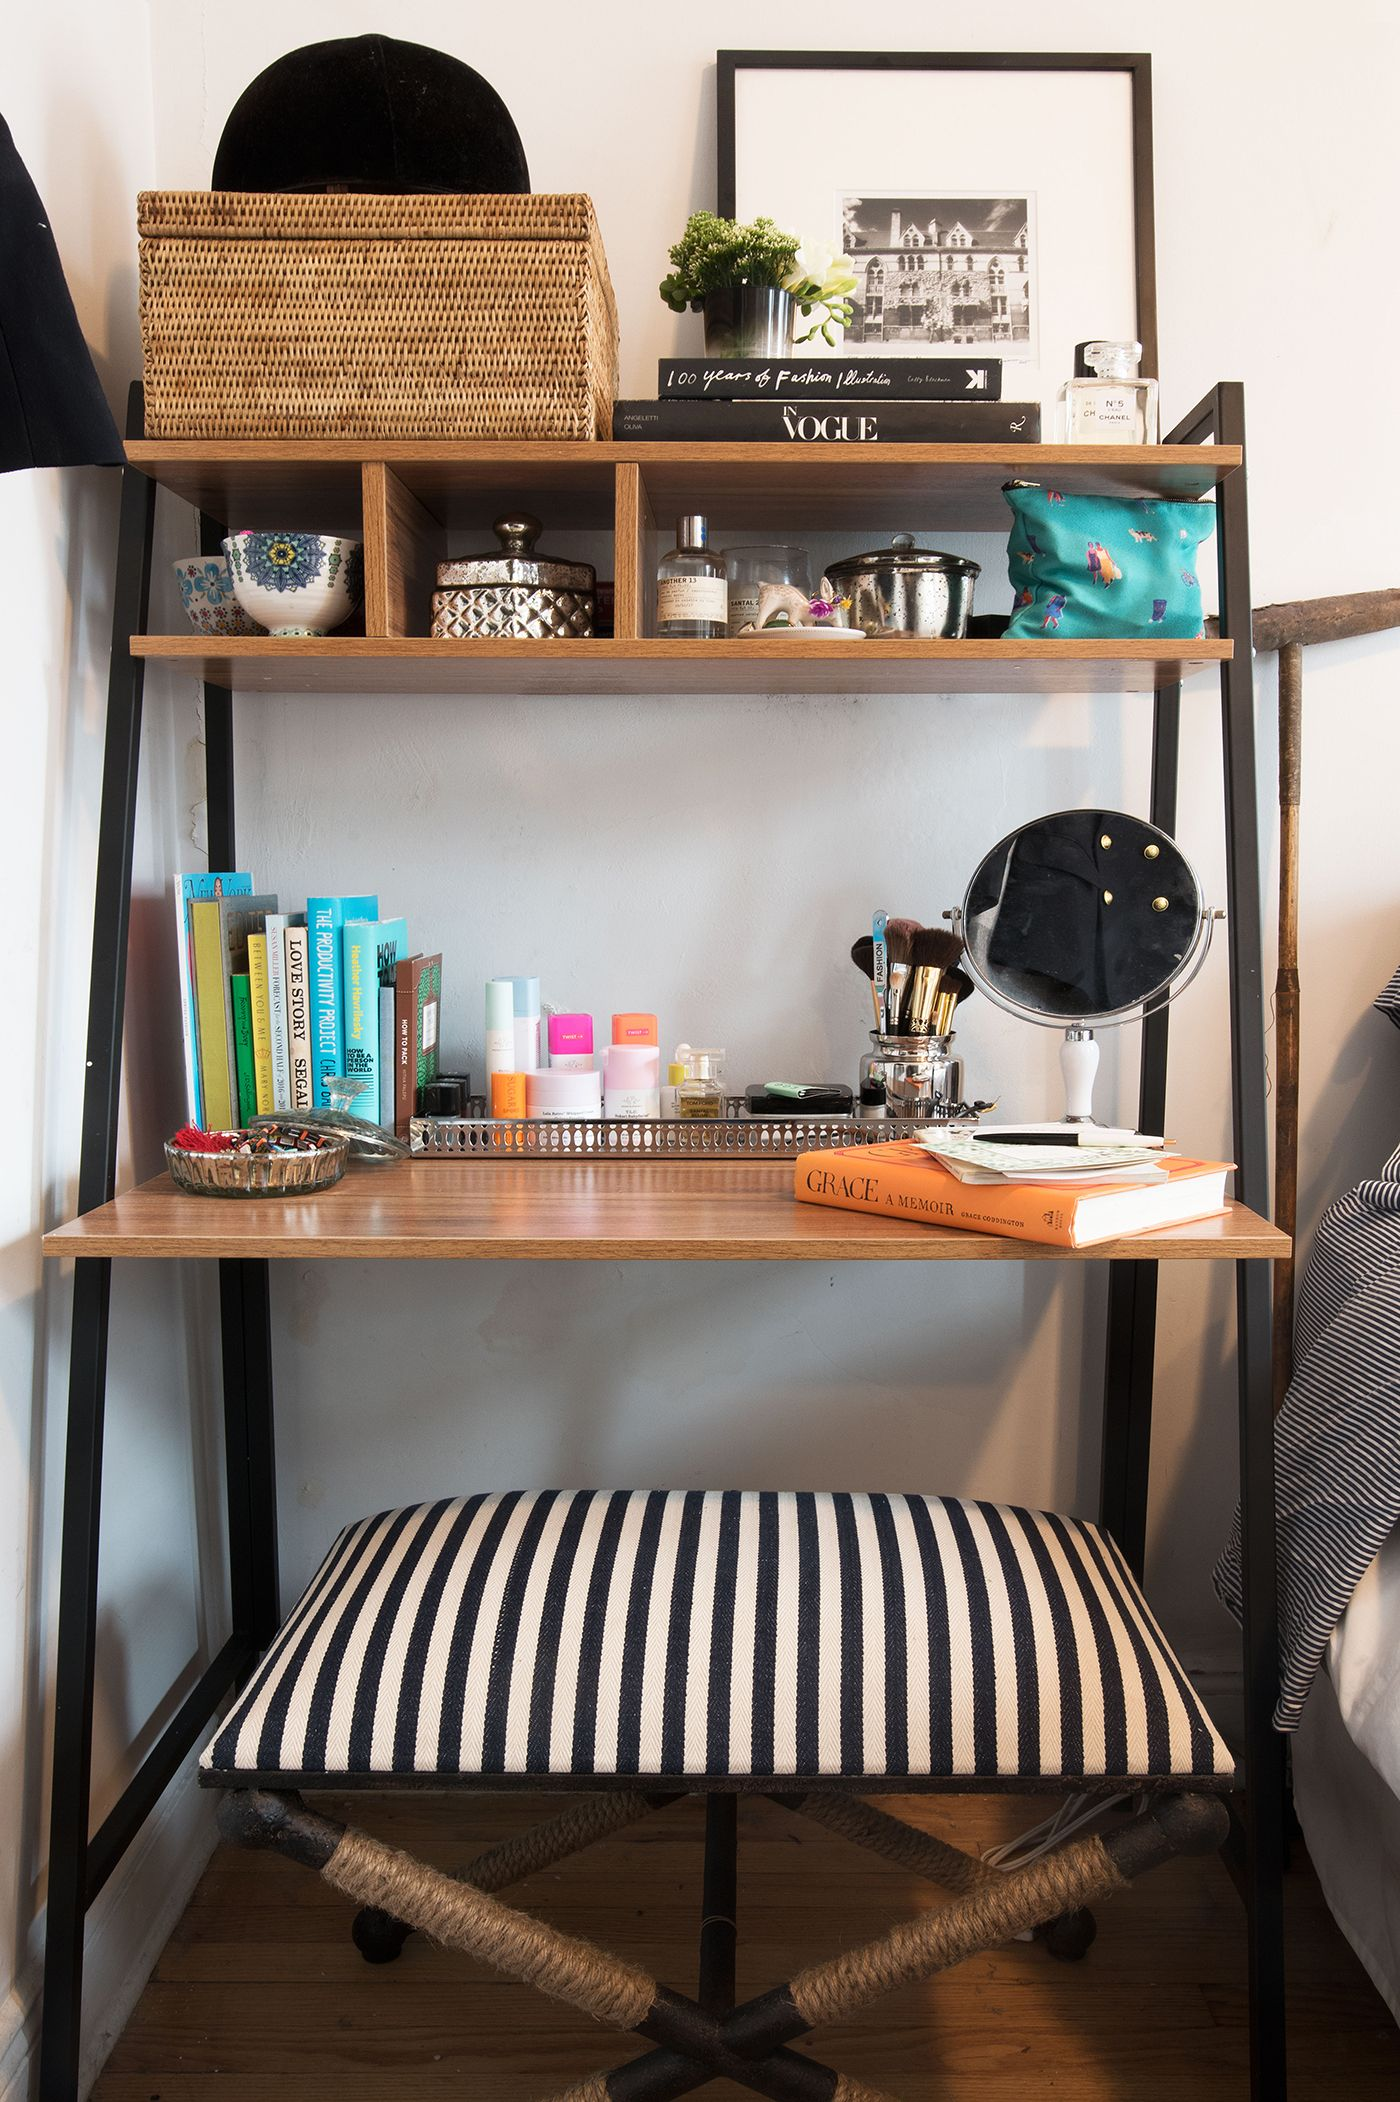 These Are Some Changing Small Apartment Organization Tips That Will Make You Love The E Re In Even If Your Roommate S Weird